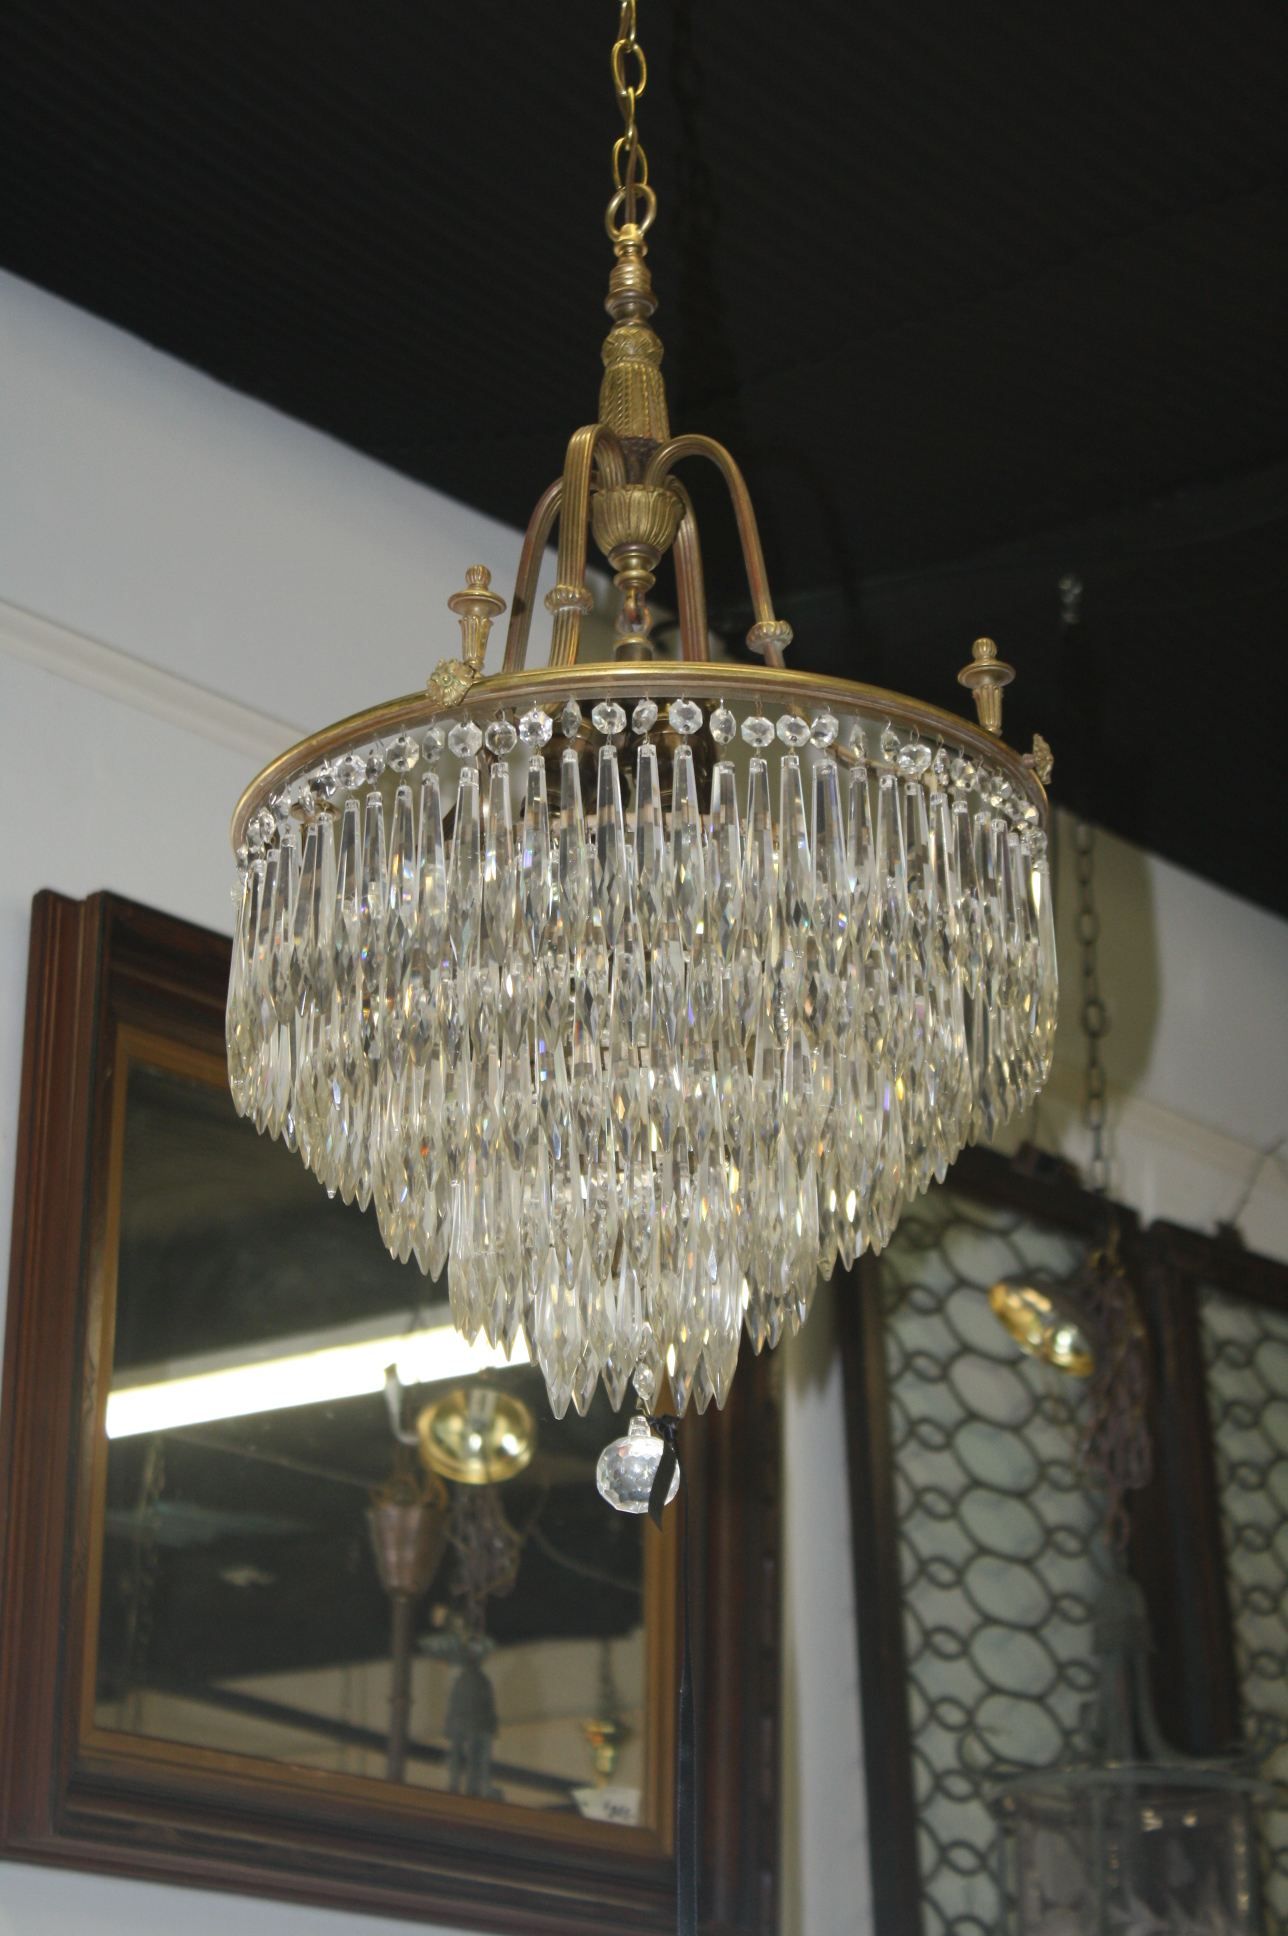 chandelier group chandeliers in aliexpress com crystal alibaba sale murano lighting from lights india on item